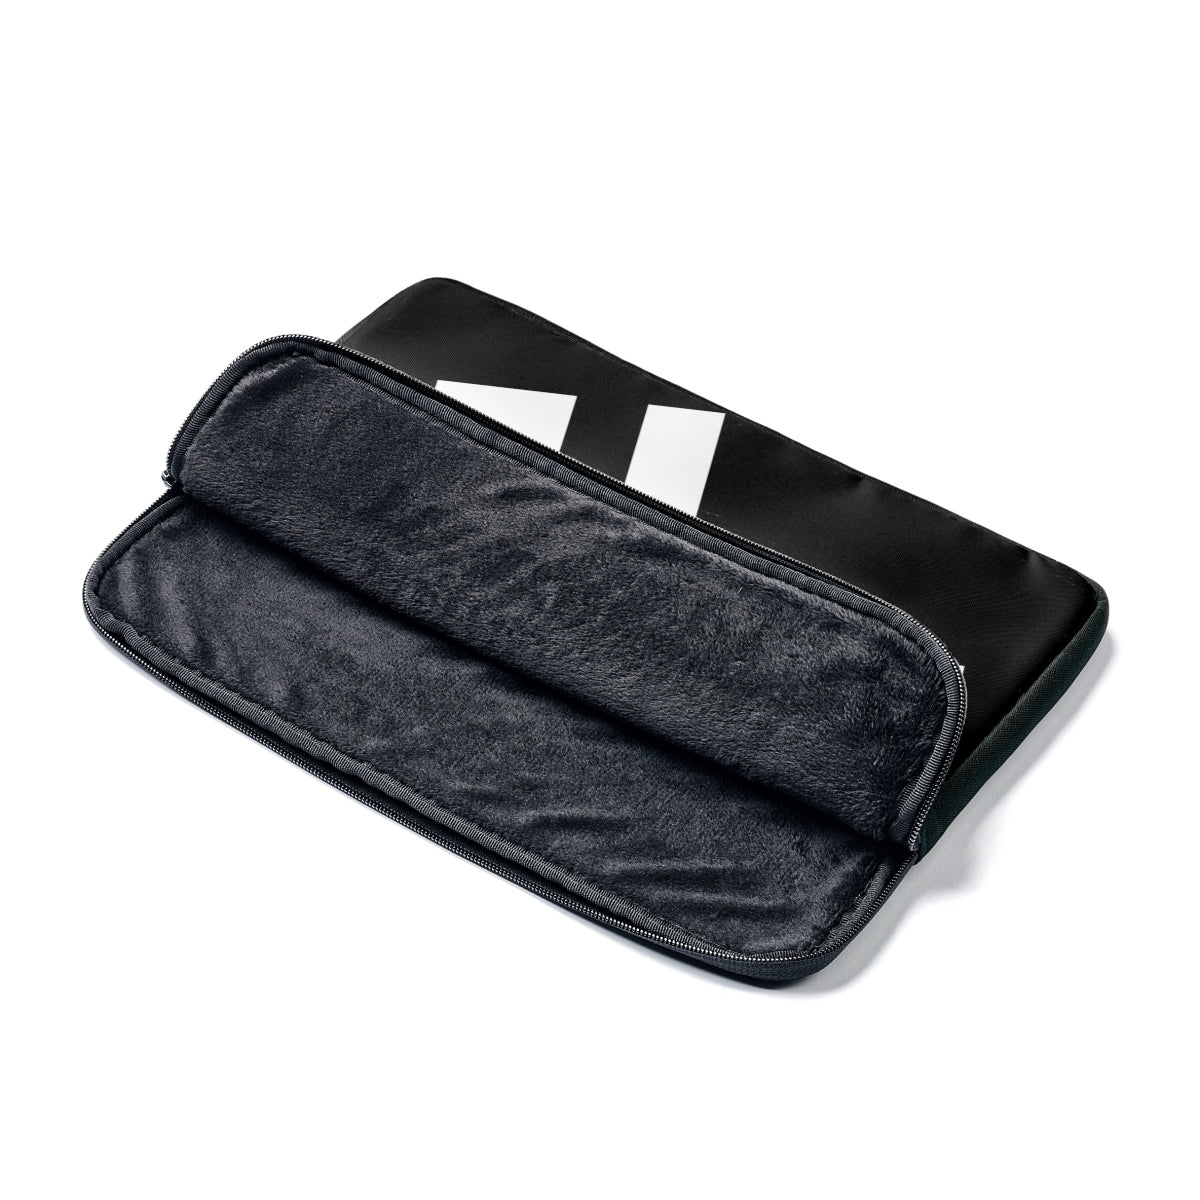 Black Laptop Sleeve 001 - Hustle Touch